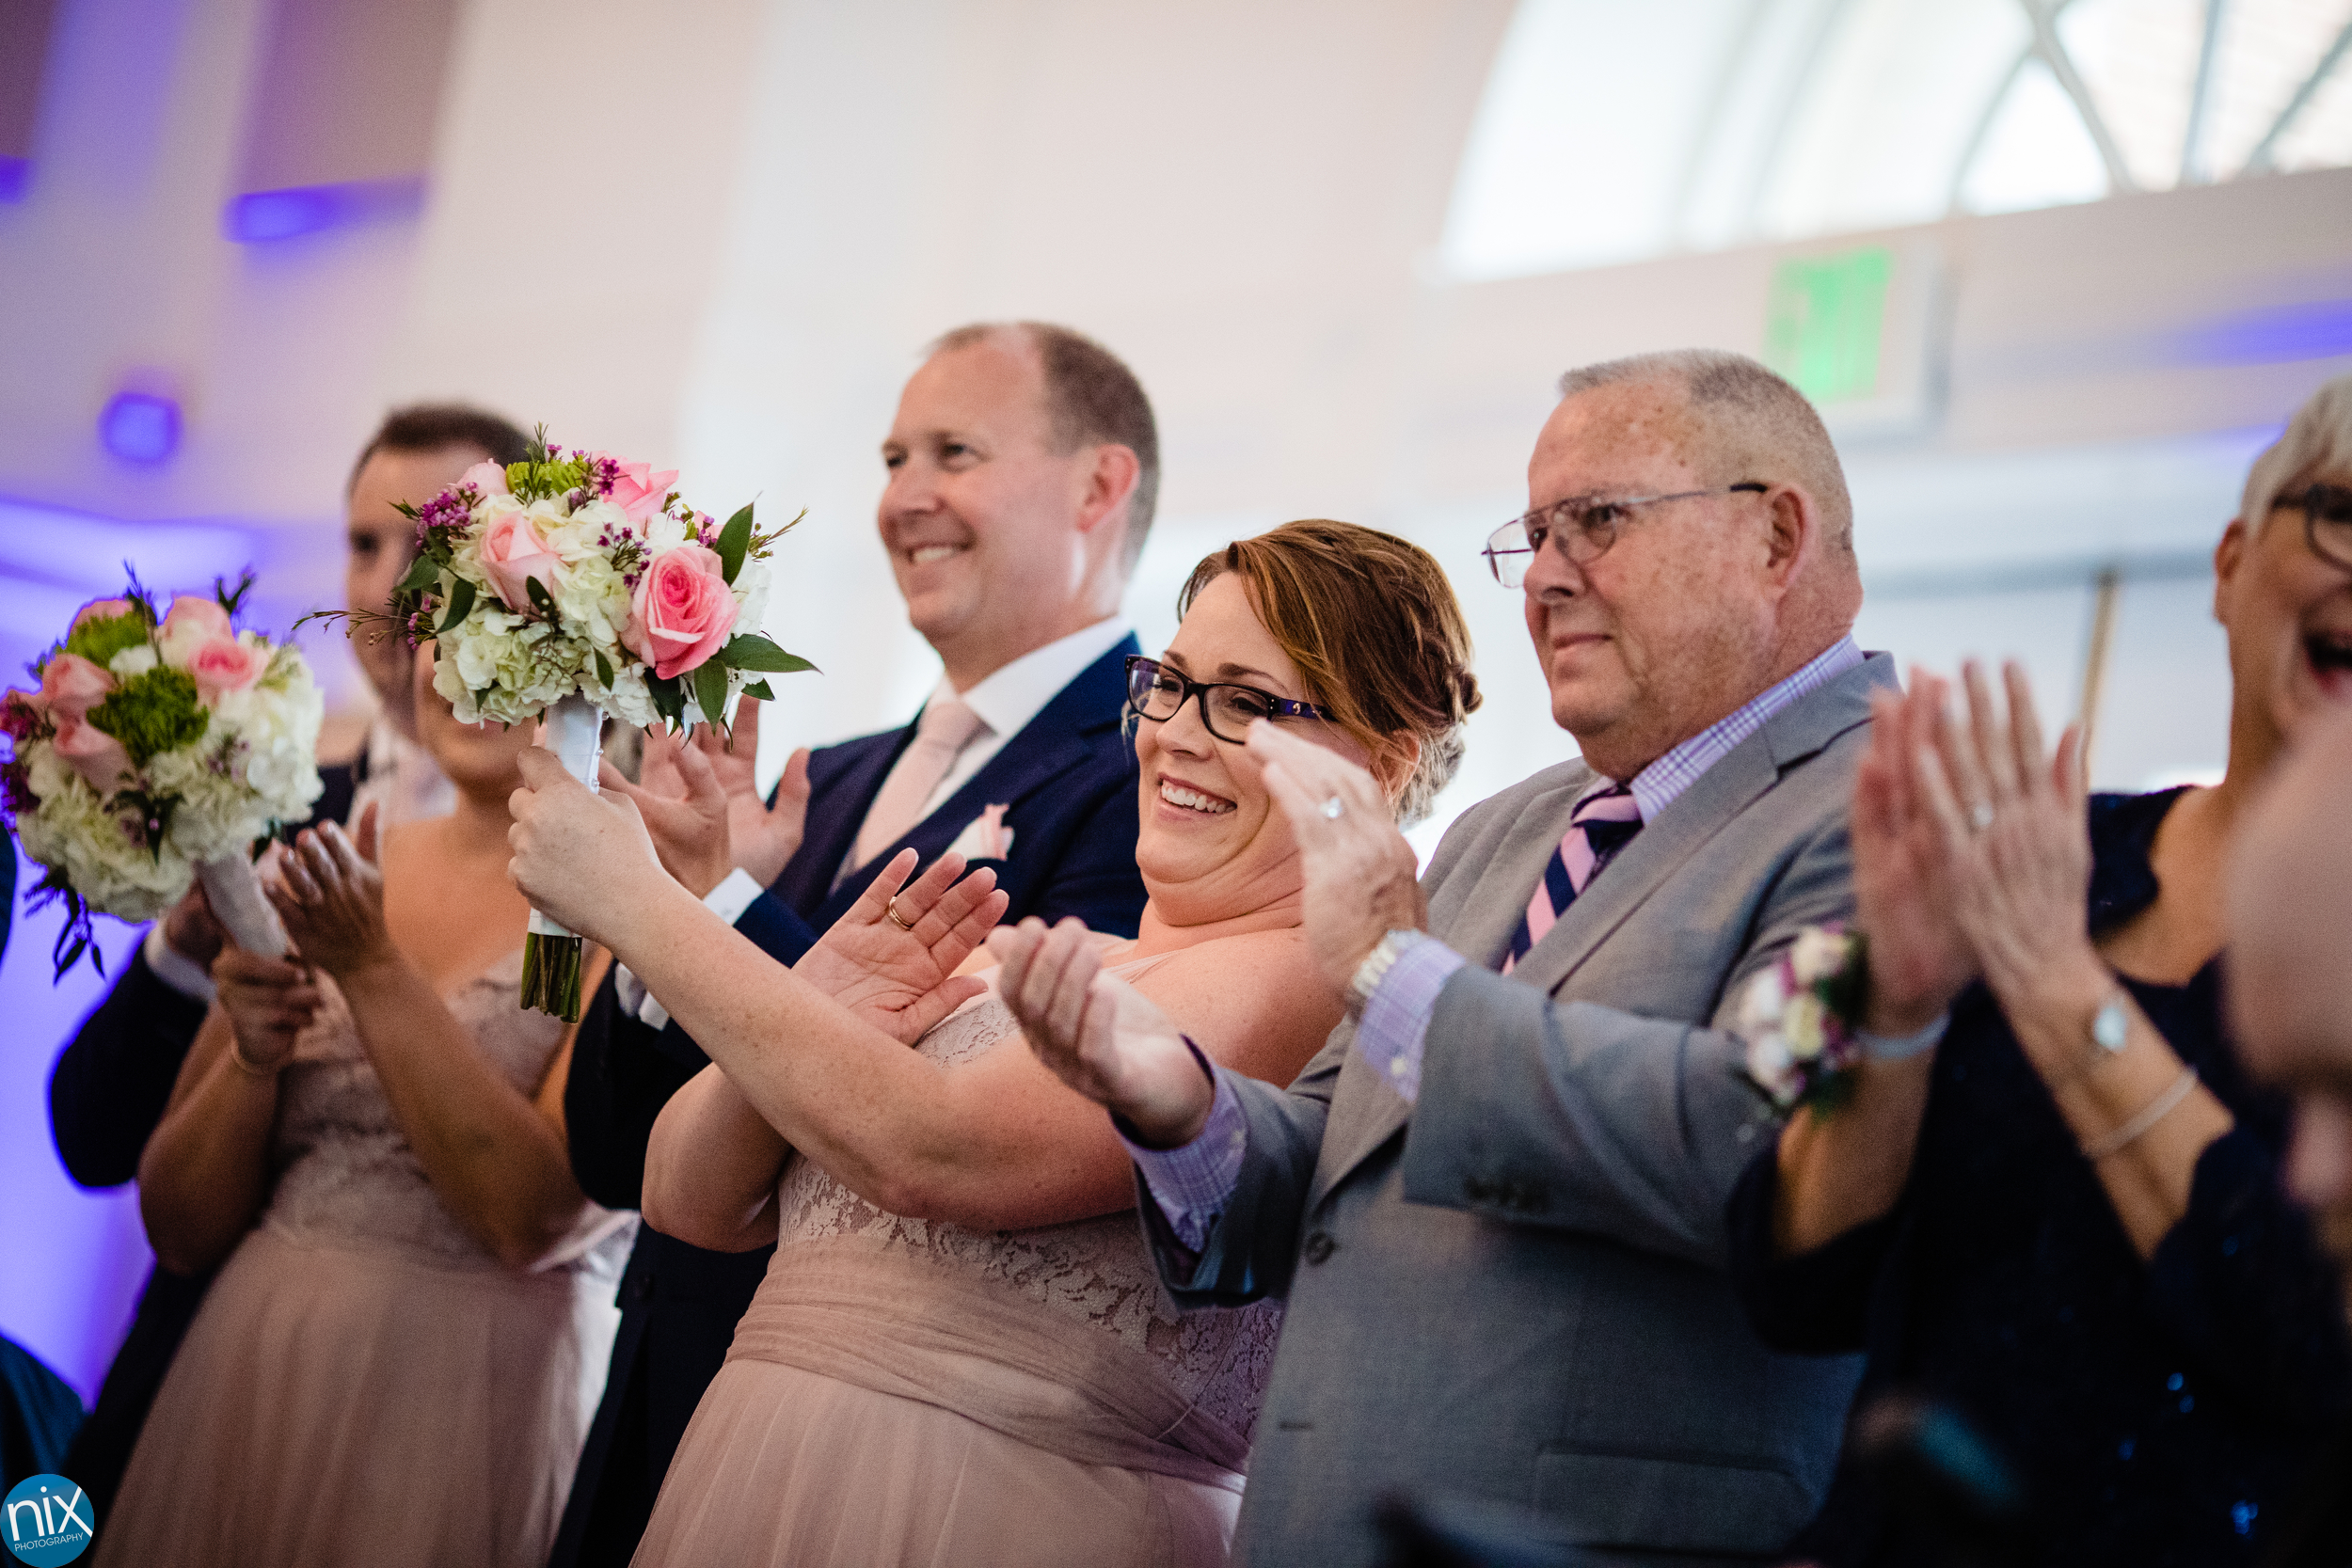 wedding party claps during reception